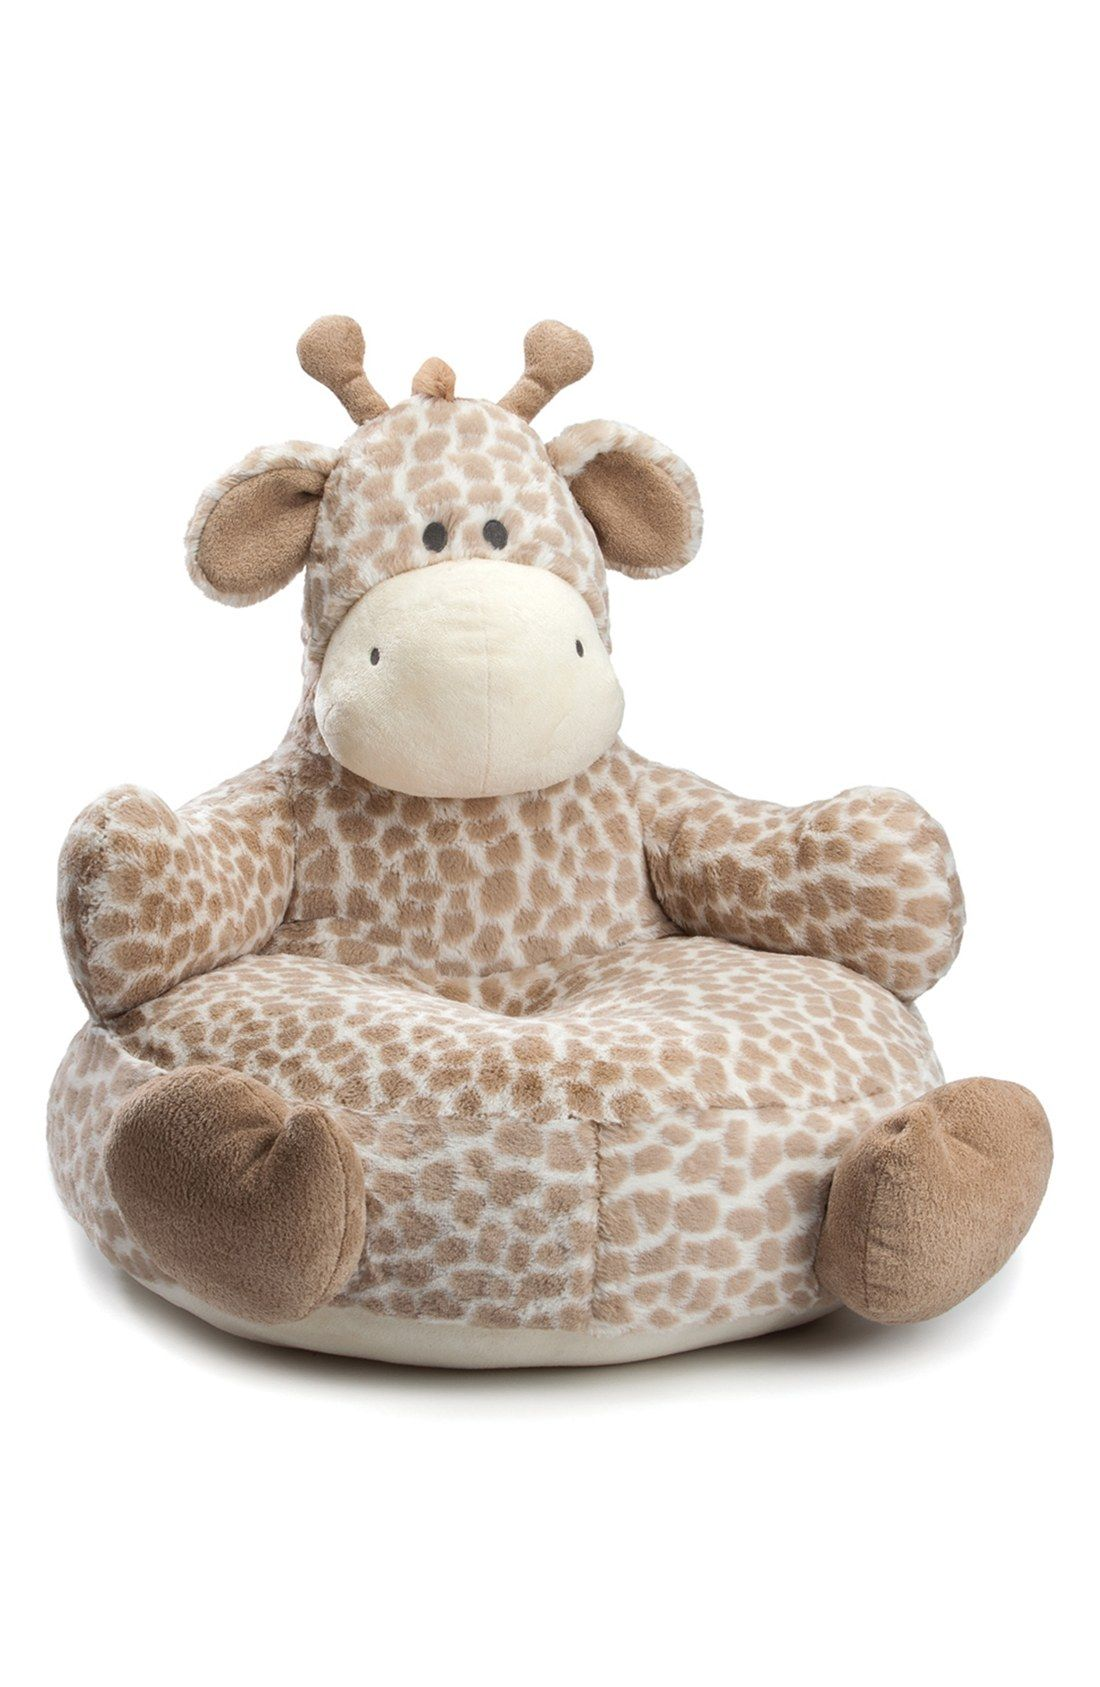 Toddler Soft Chairs Infant Nat And Jules Giraffe Plush Baby Chair Scarlett O